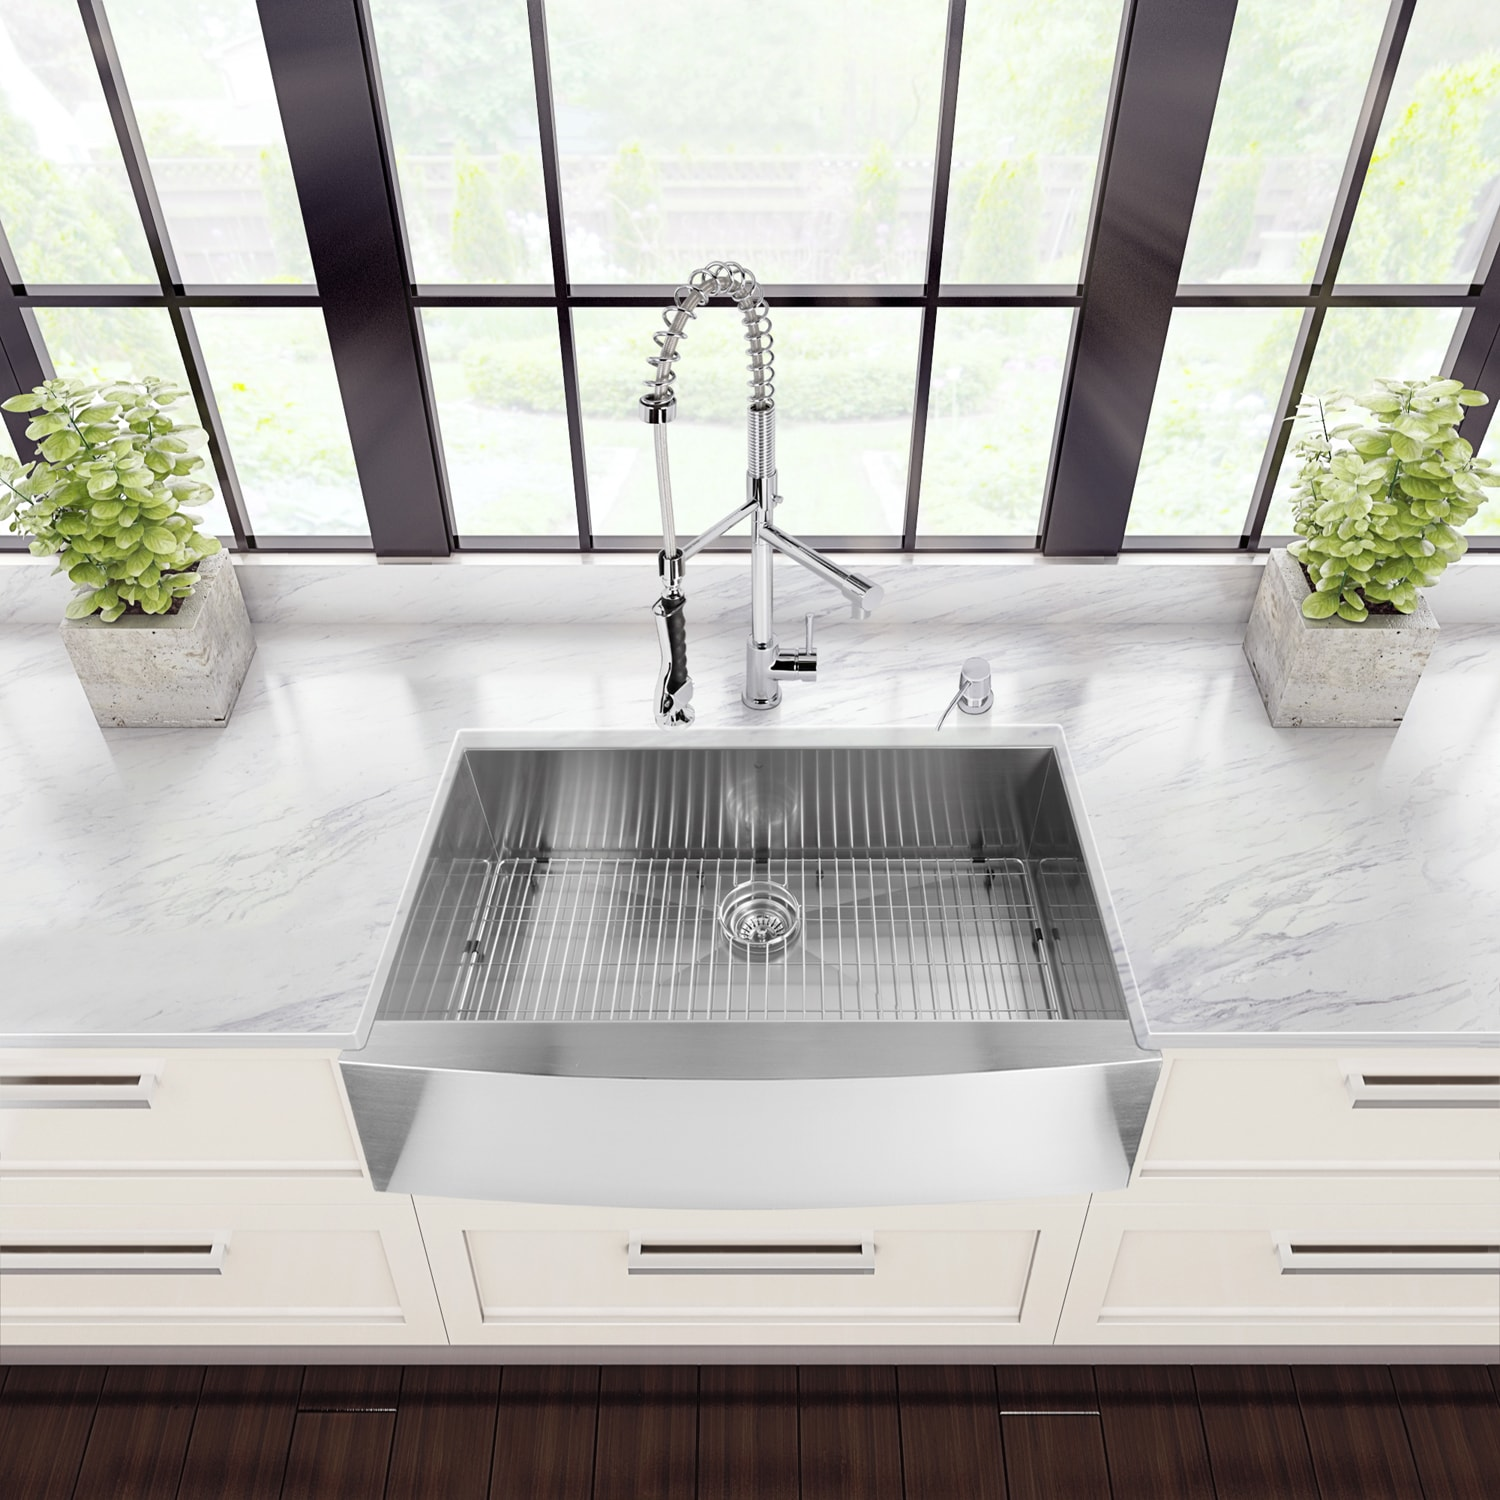 VIGO All-In-One 36 Camden Stainless Steel Farmhouse Kitchen Sink Set With  Zurich Faucet In Chrome - Free Shipping Today - Overstock.com - 12689255